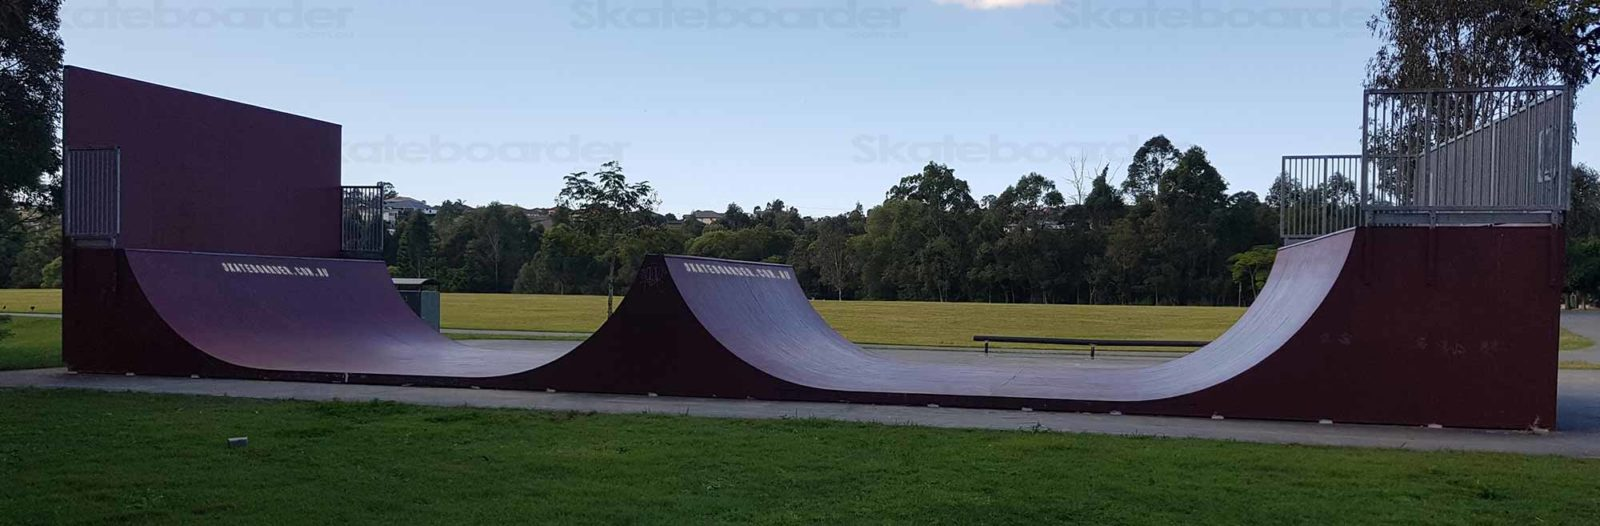 Oxenford double halfpipe